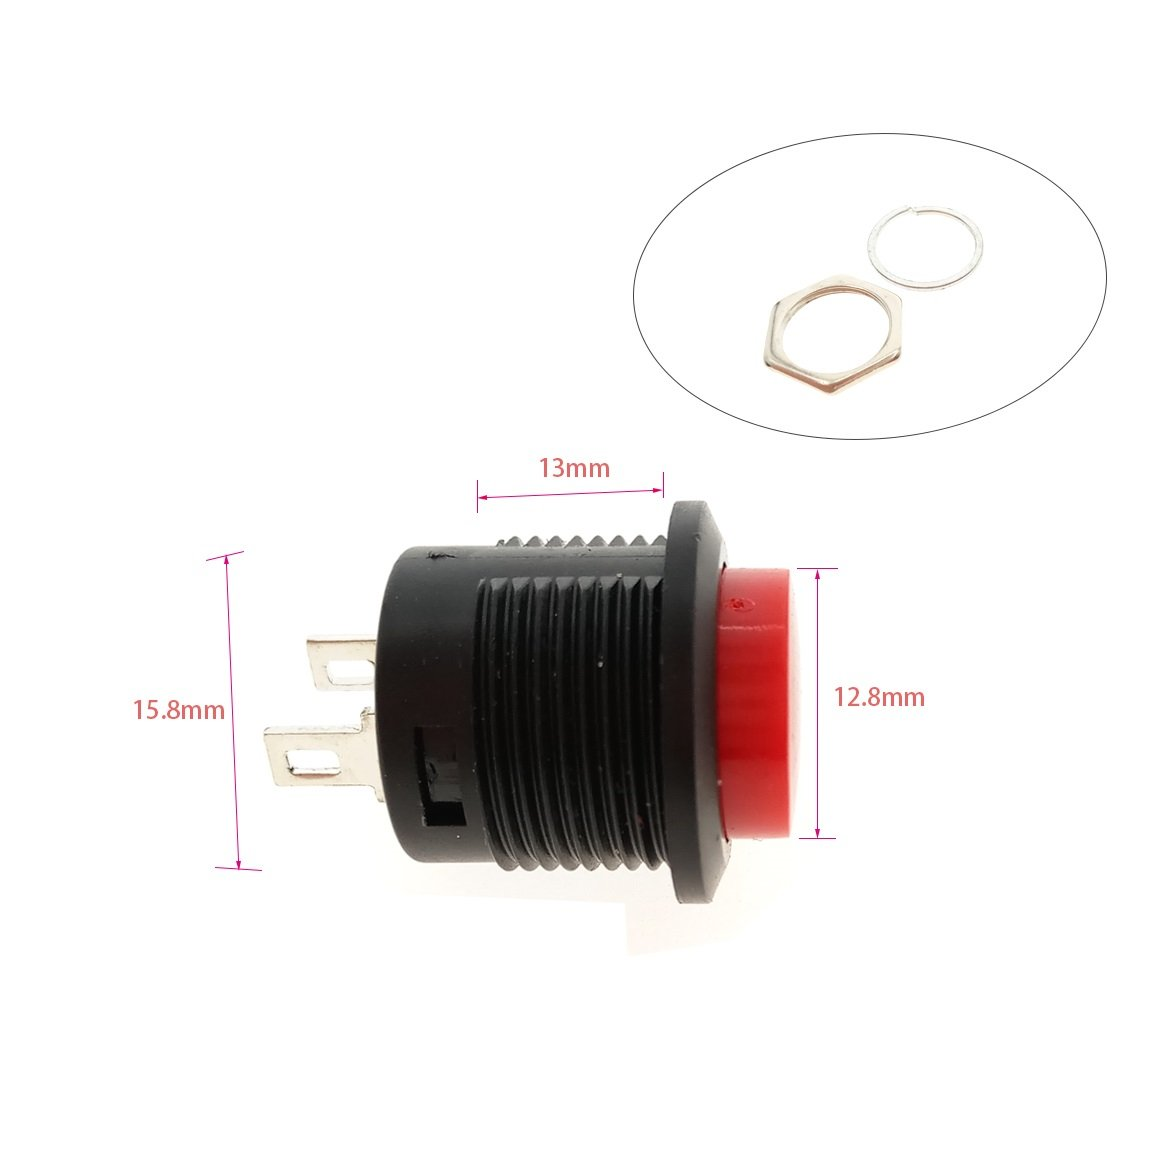 SPST NO Momentary Push Button Switch 2 Terminals AC 6Amp//125V 3Amp//250V Mini Red Cap 5-Pack